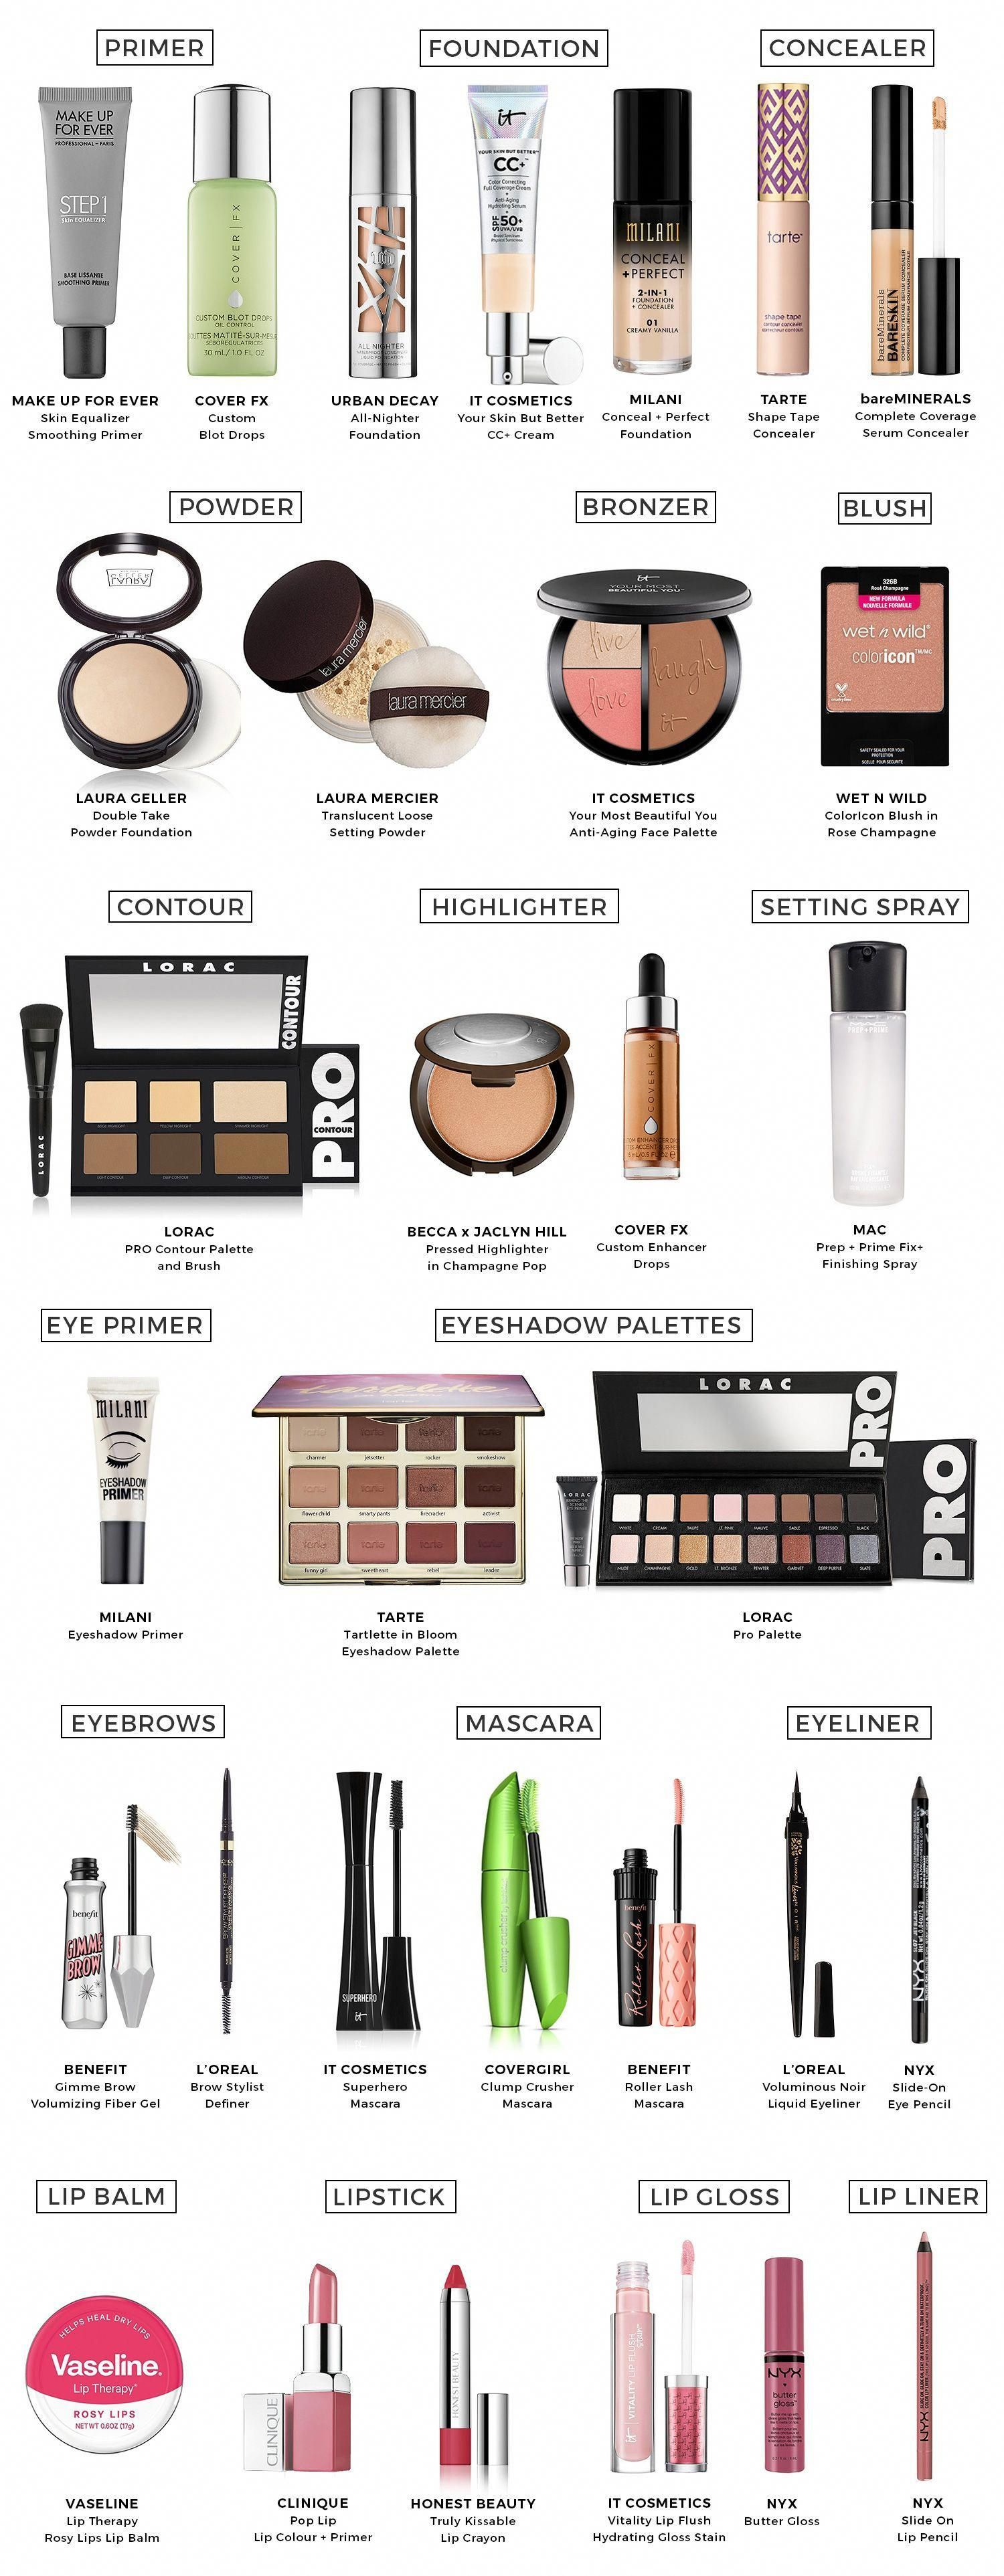 Looking for the BEST makeup on the market? Beauty blogger